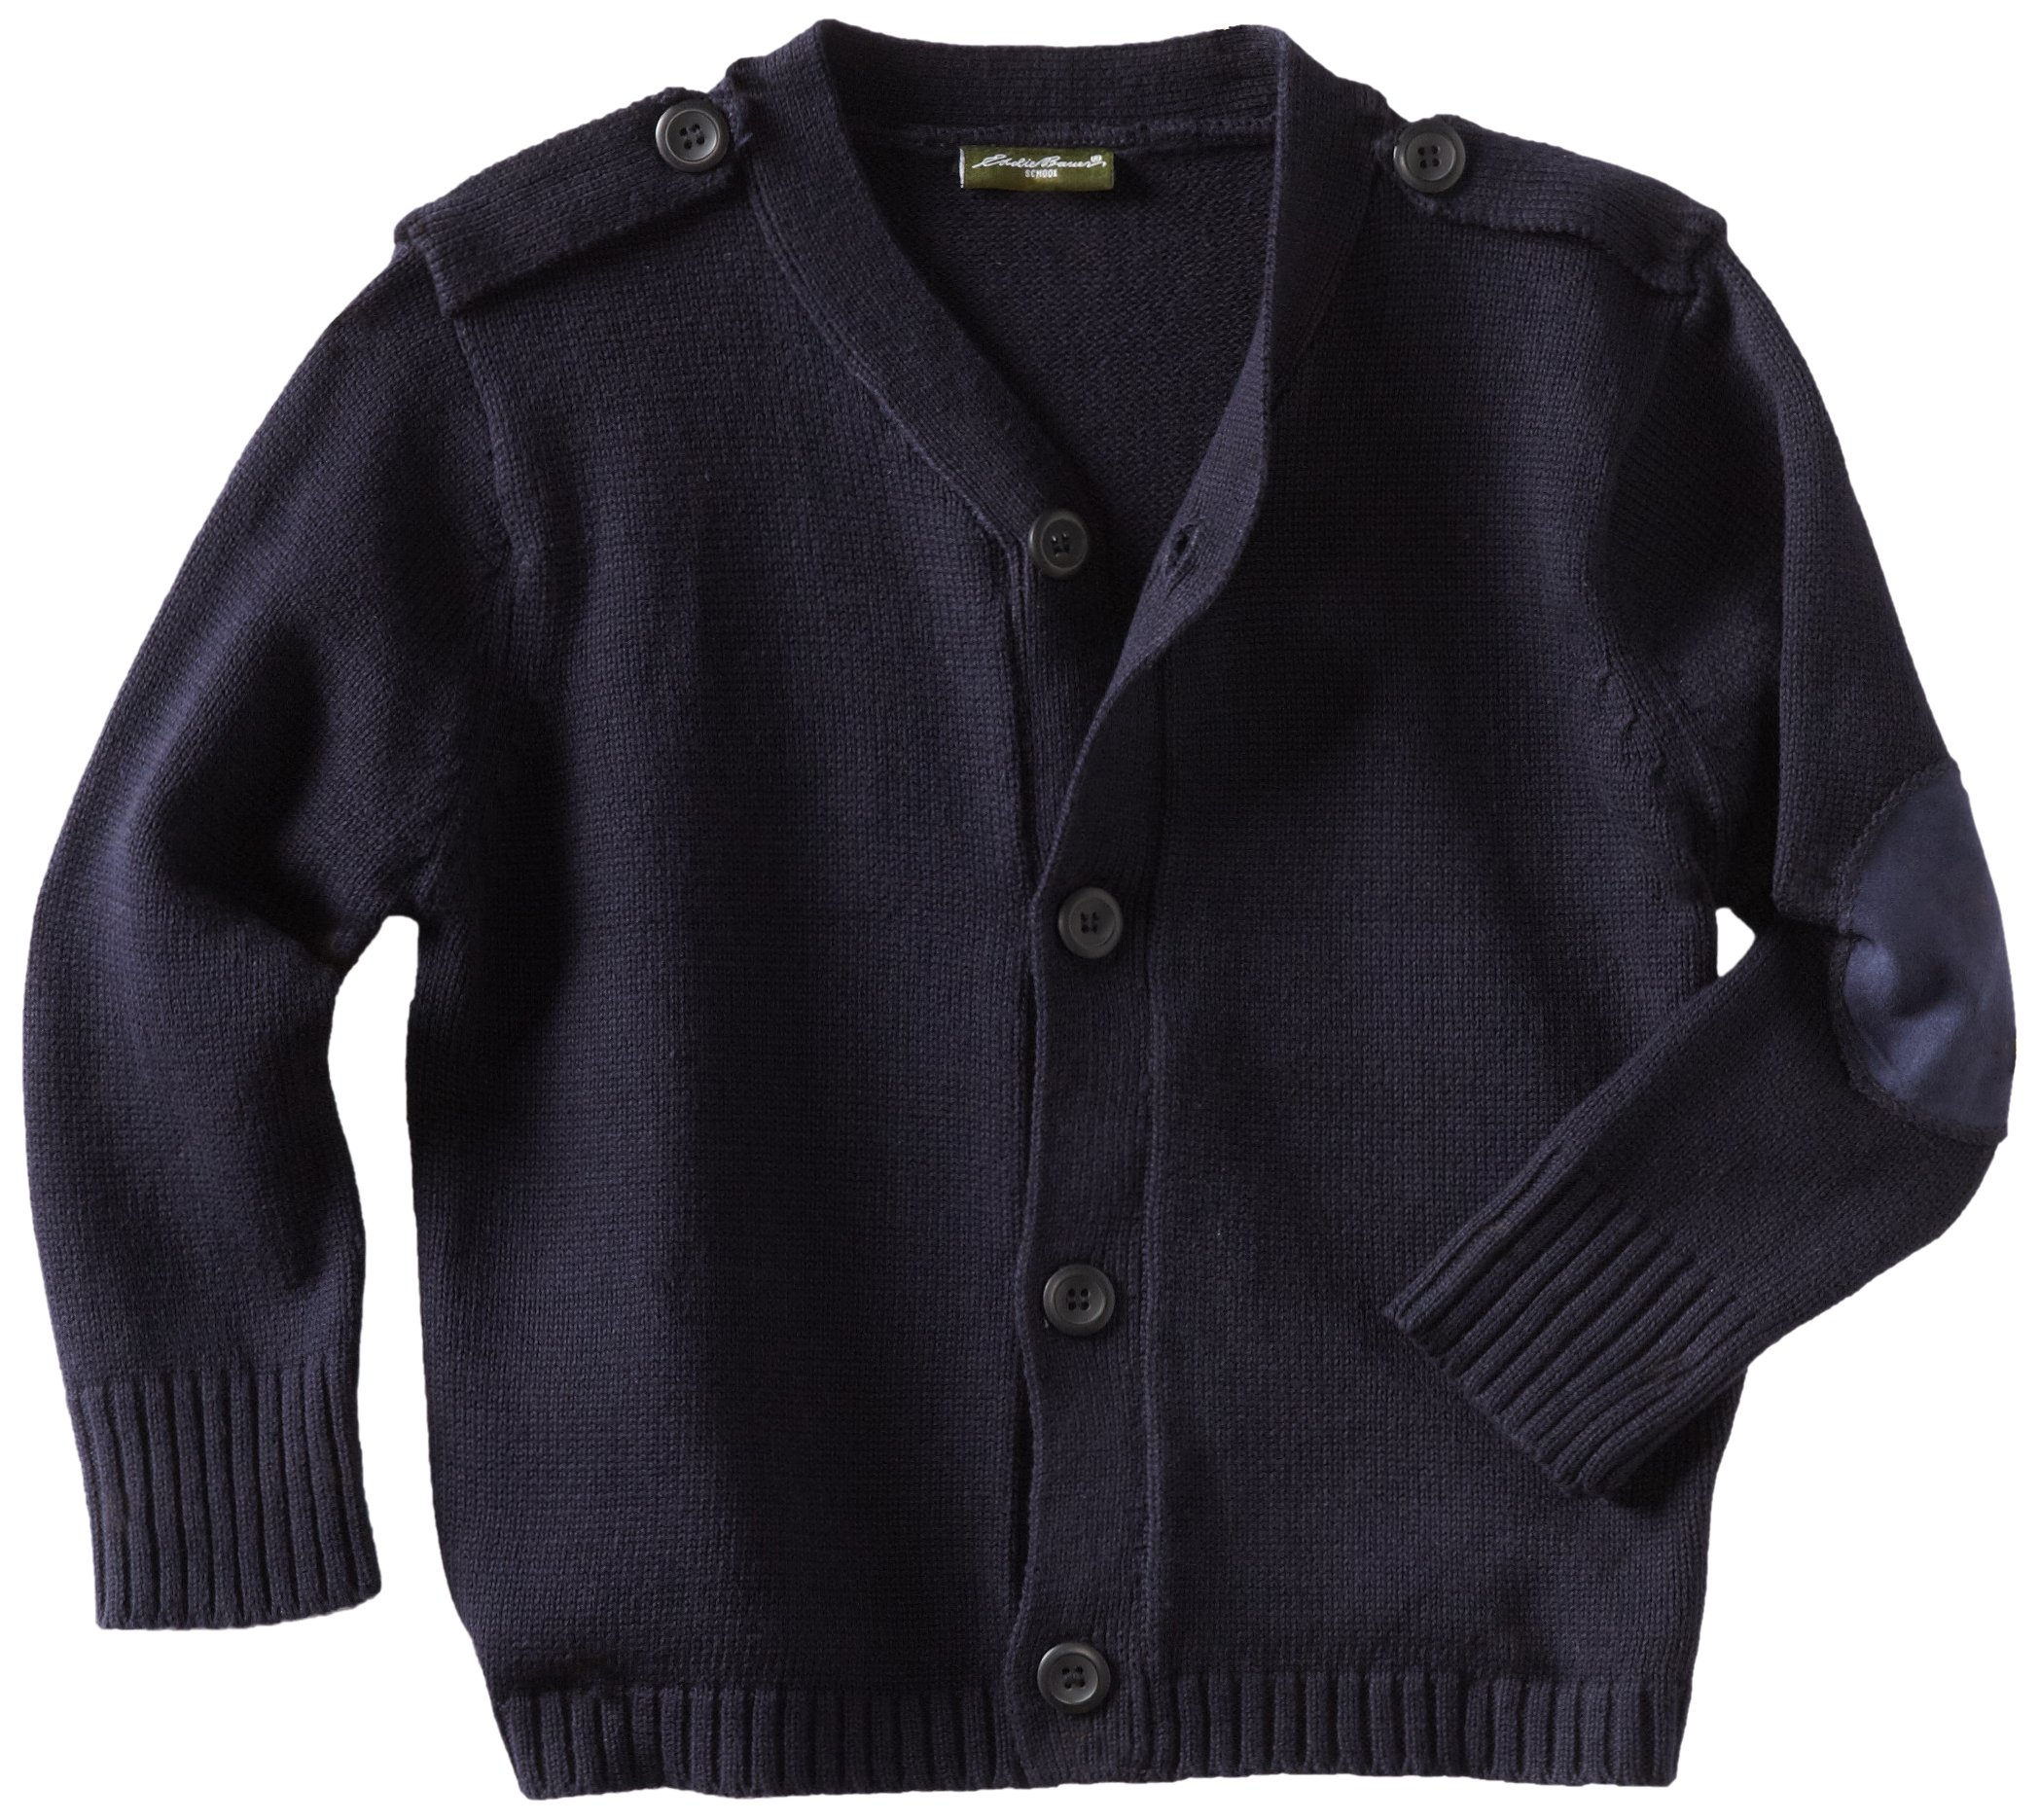 Eddie Bauer Big Boys' Sweater (More Styles Available), Basic Navy, 5/6